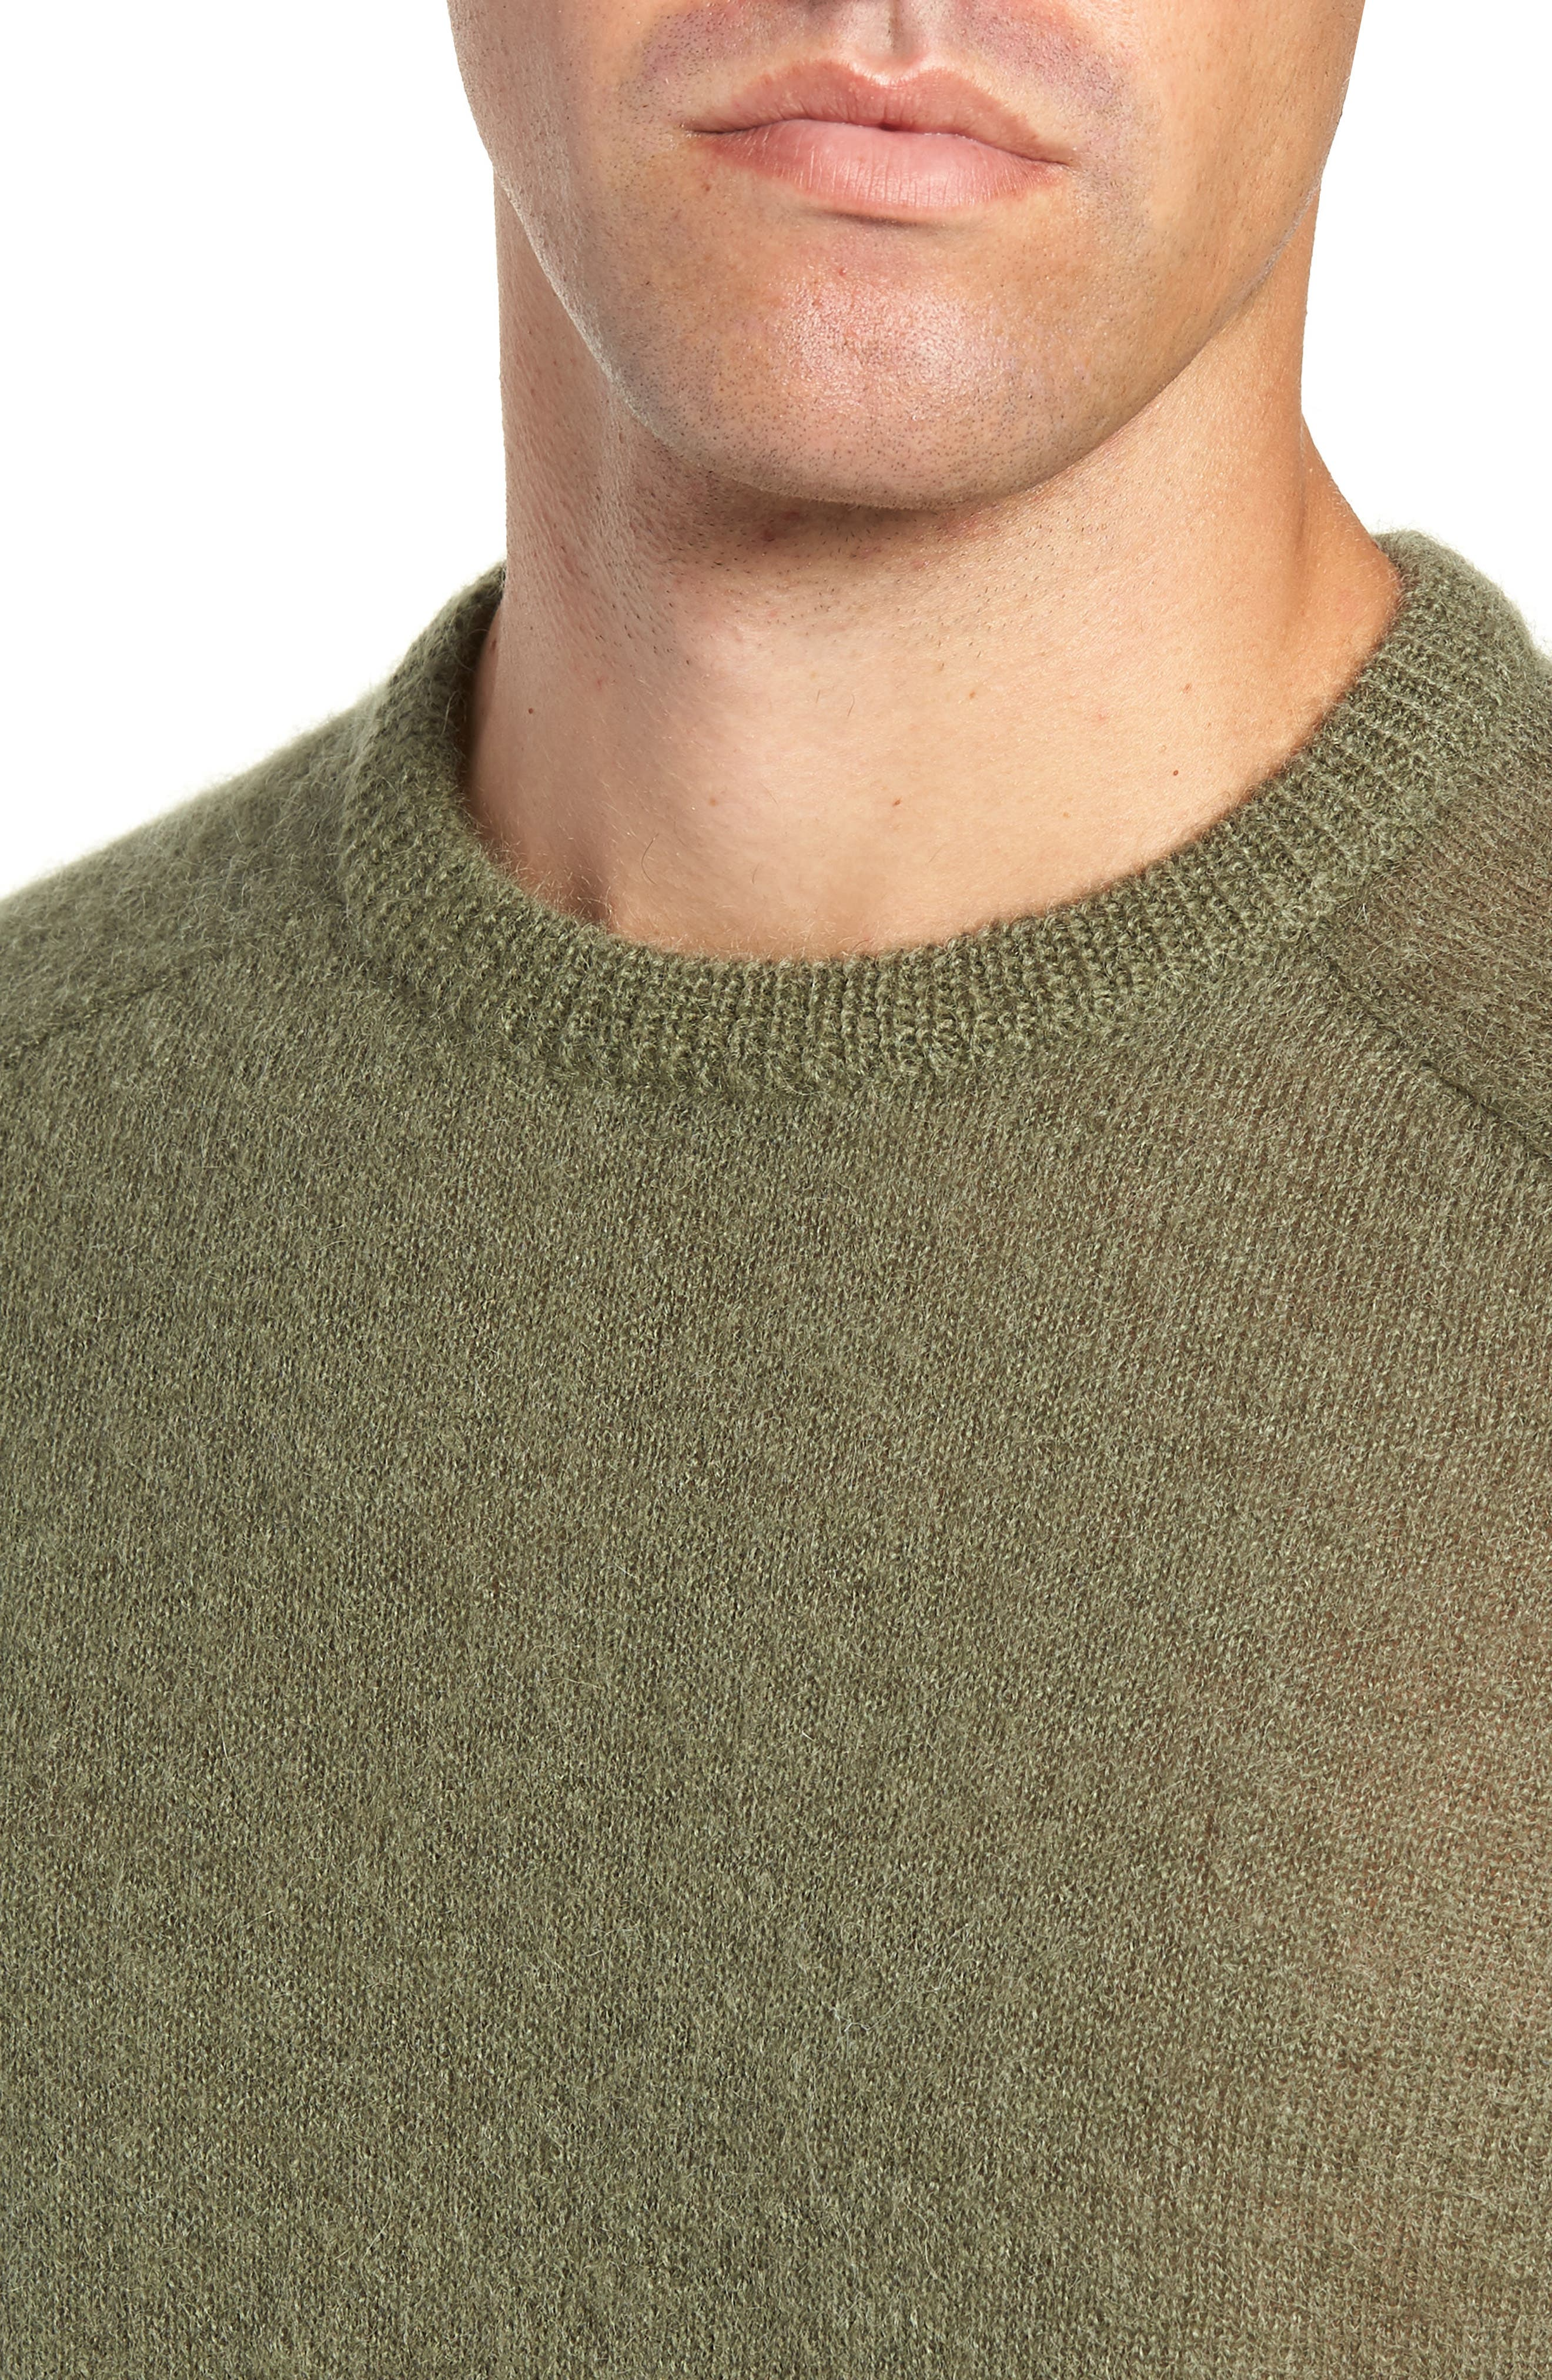 Mohair Blend Crewneck Sweater,                             Alternate thumbnail 4, color,                             DARK OLIVE